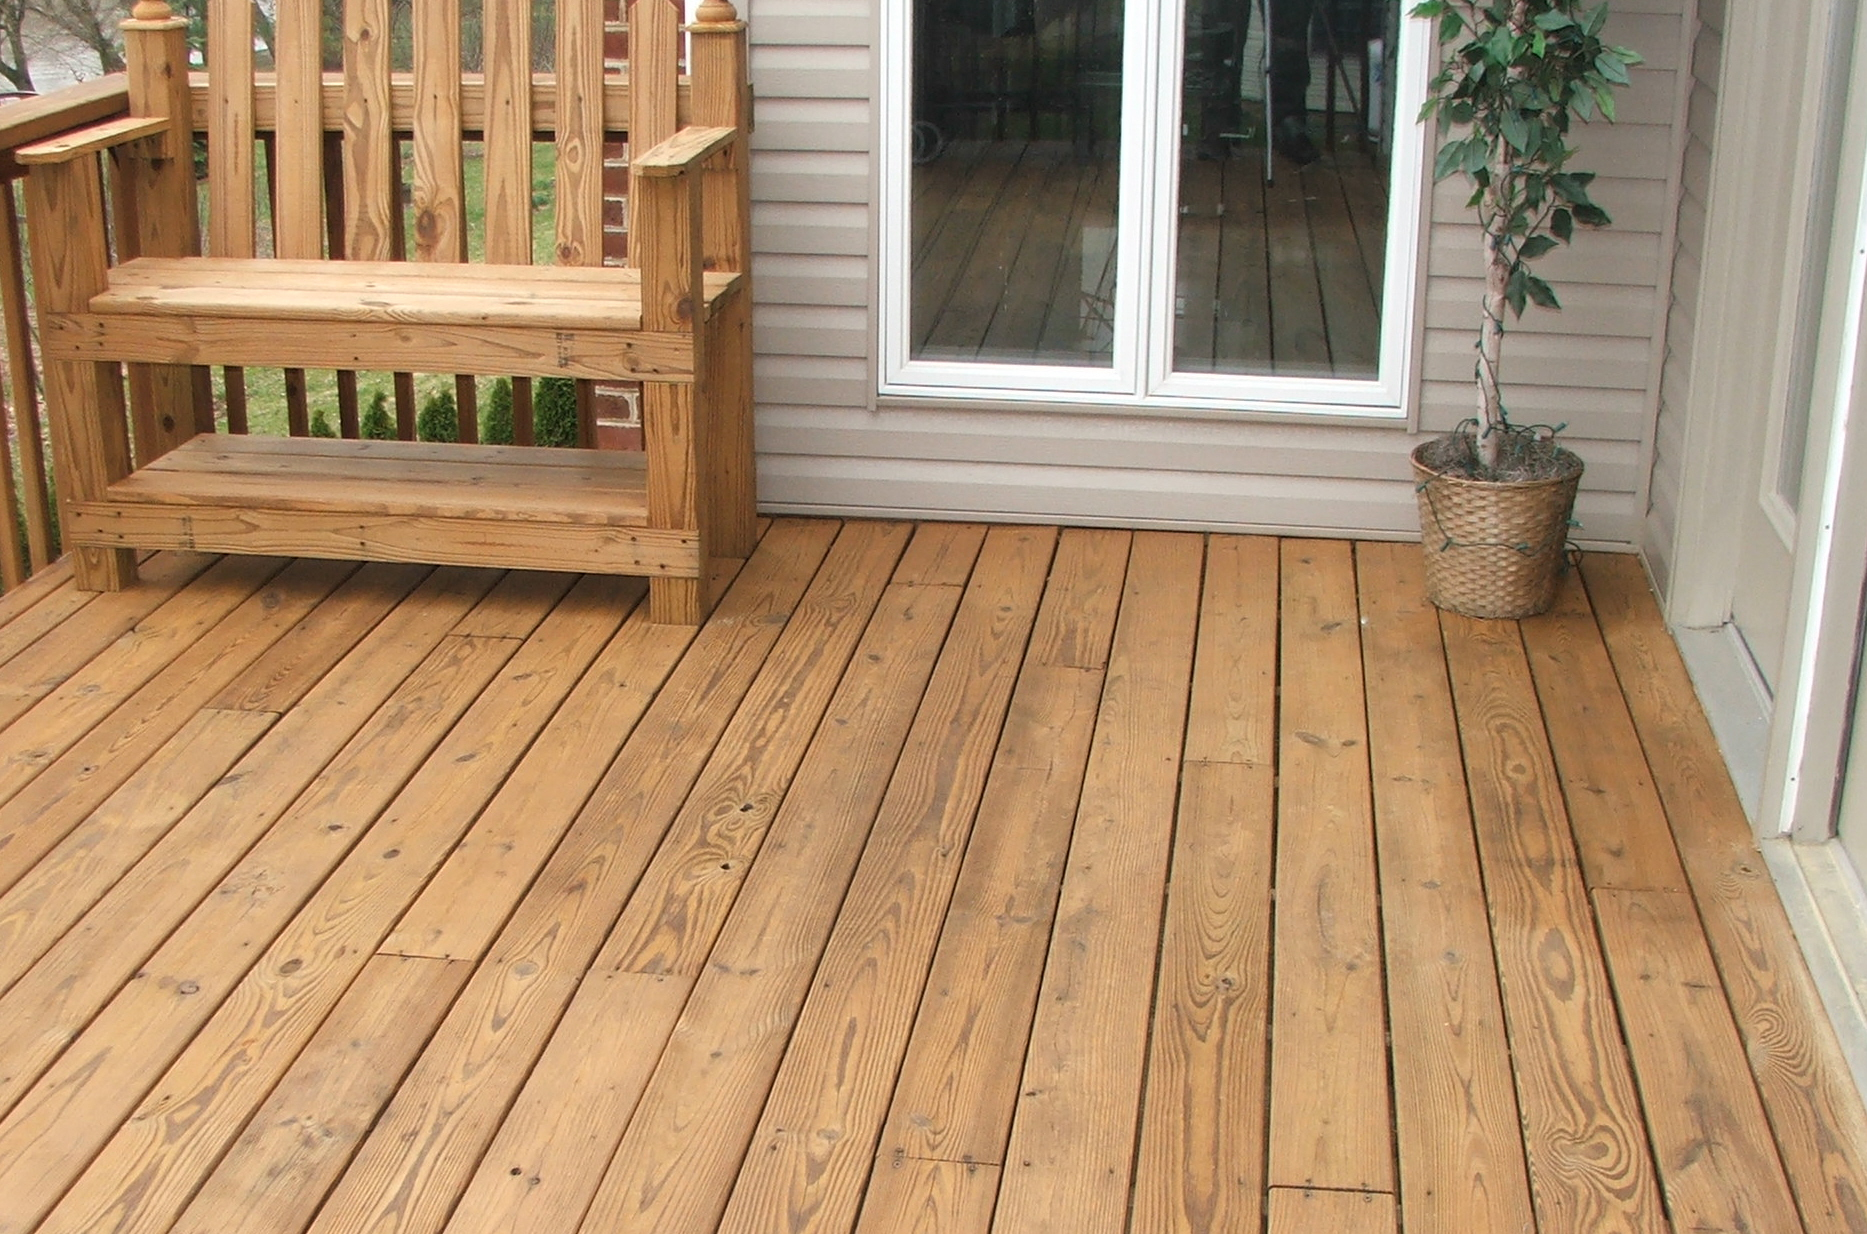 Wood deck after pressure washing and seal/staining protection using a cedar toner product. Typical three(3) year preformance.